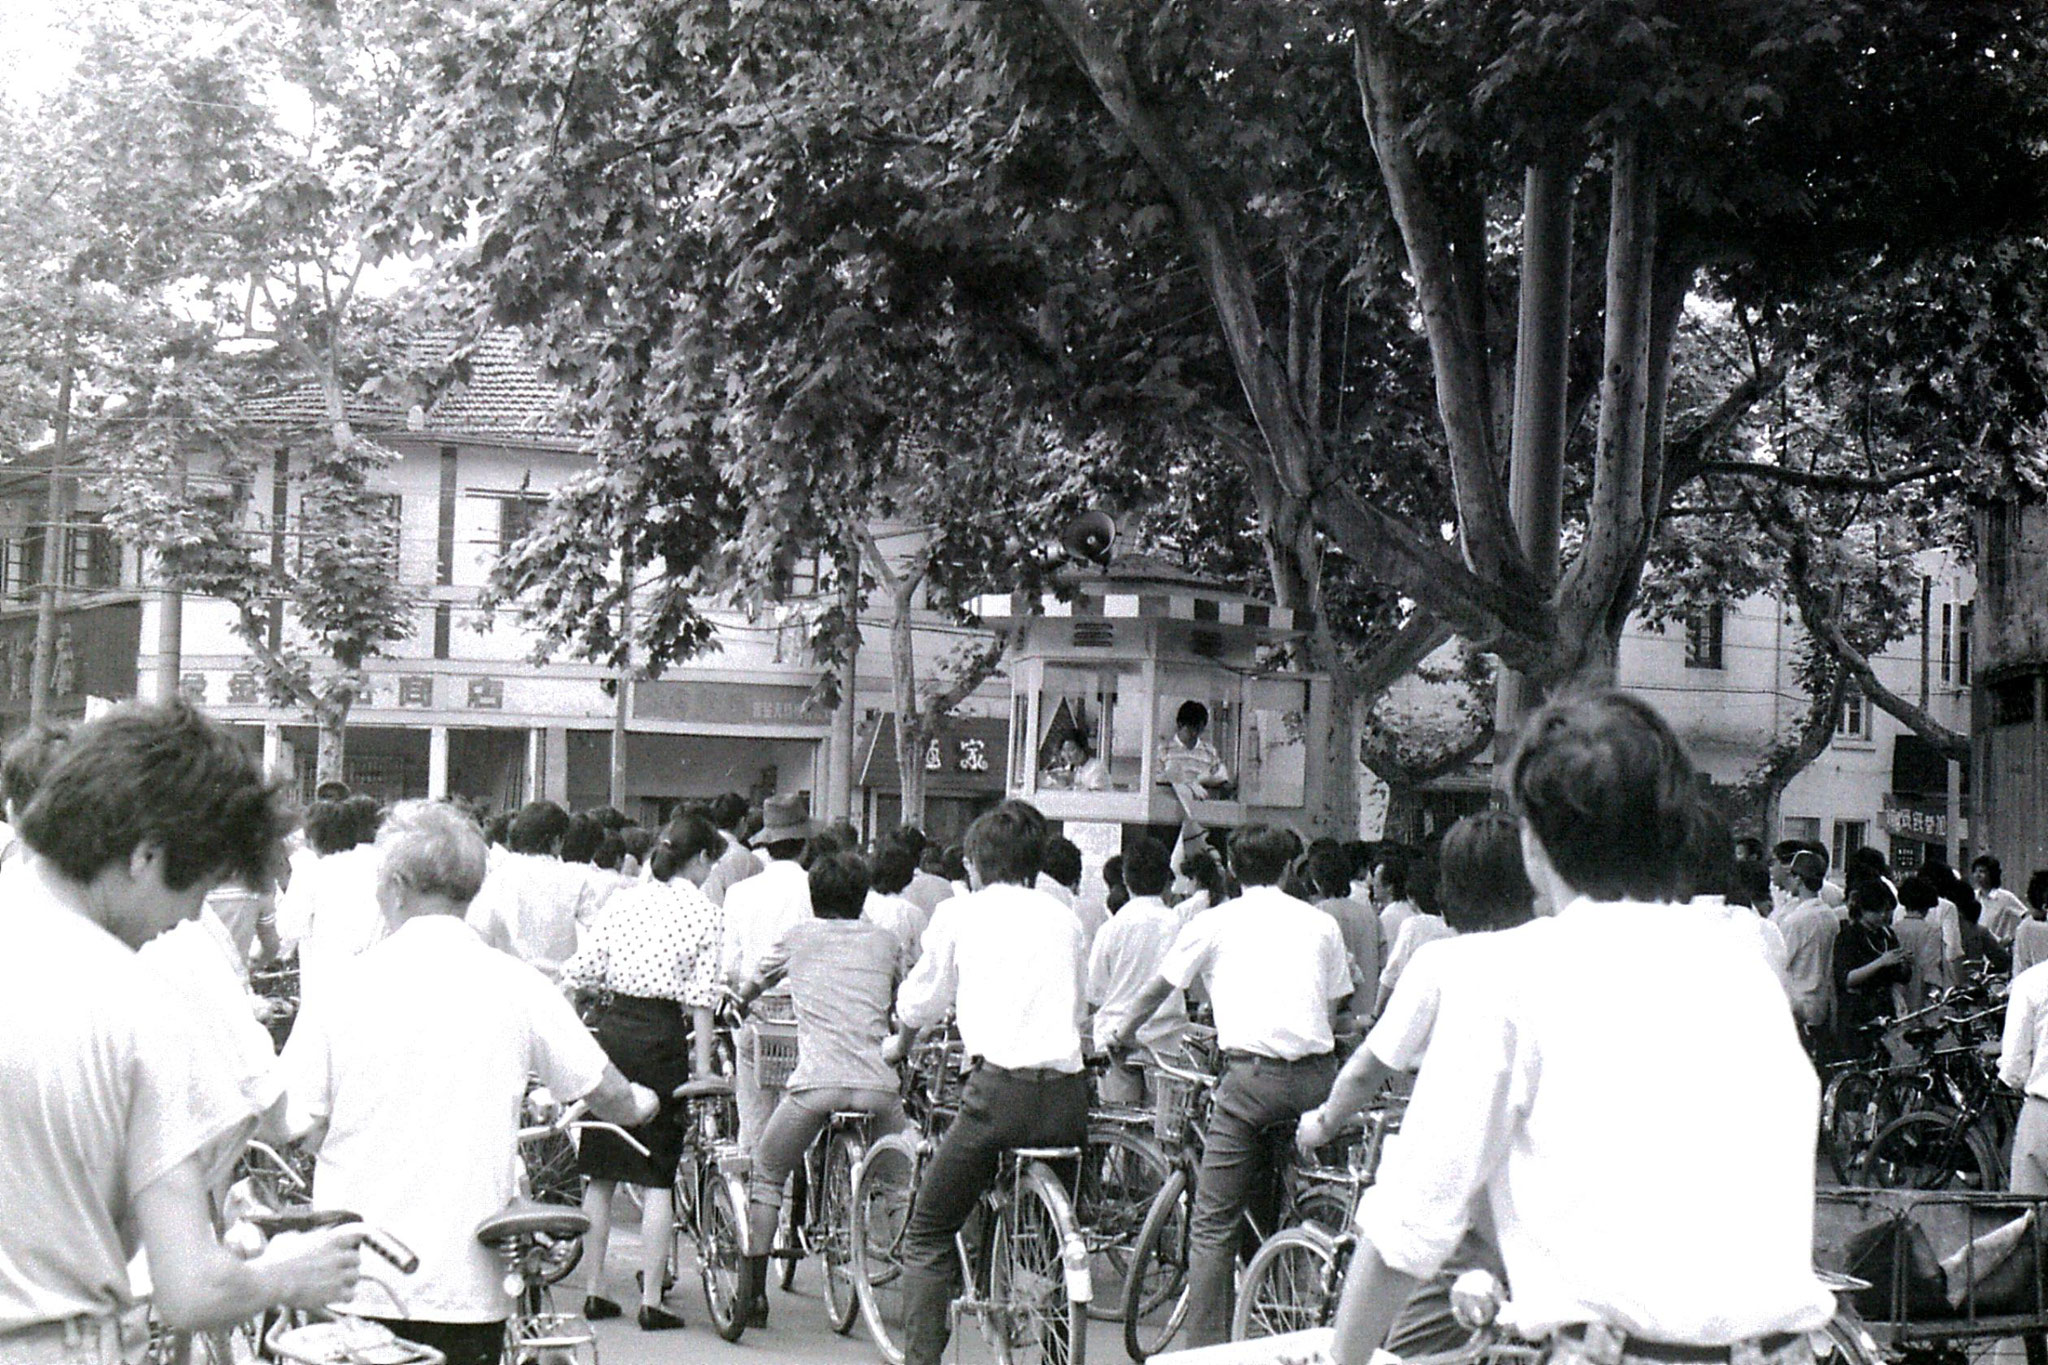 6/6/1989: 28: demonstrations around Hangzhou